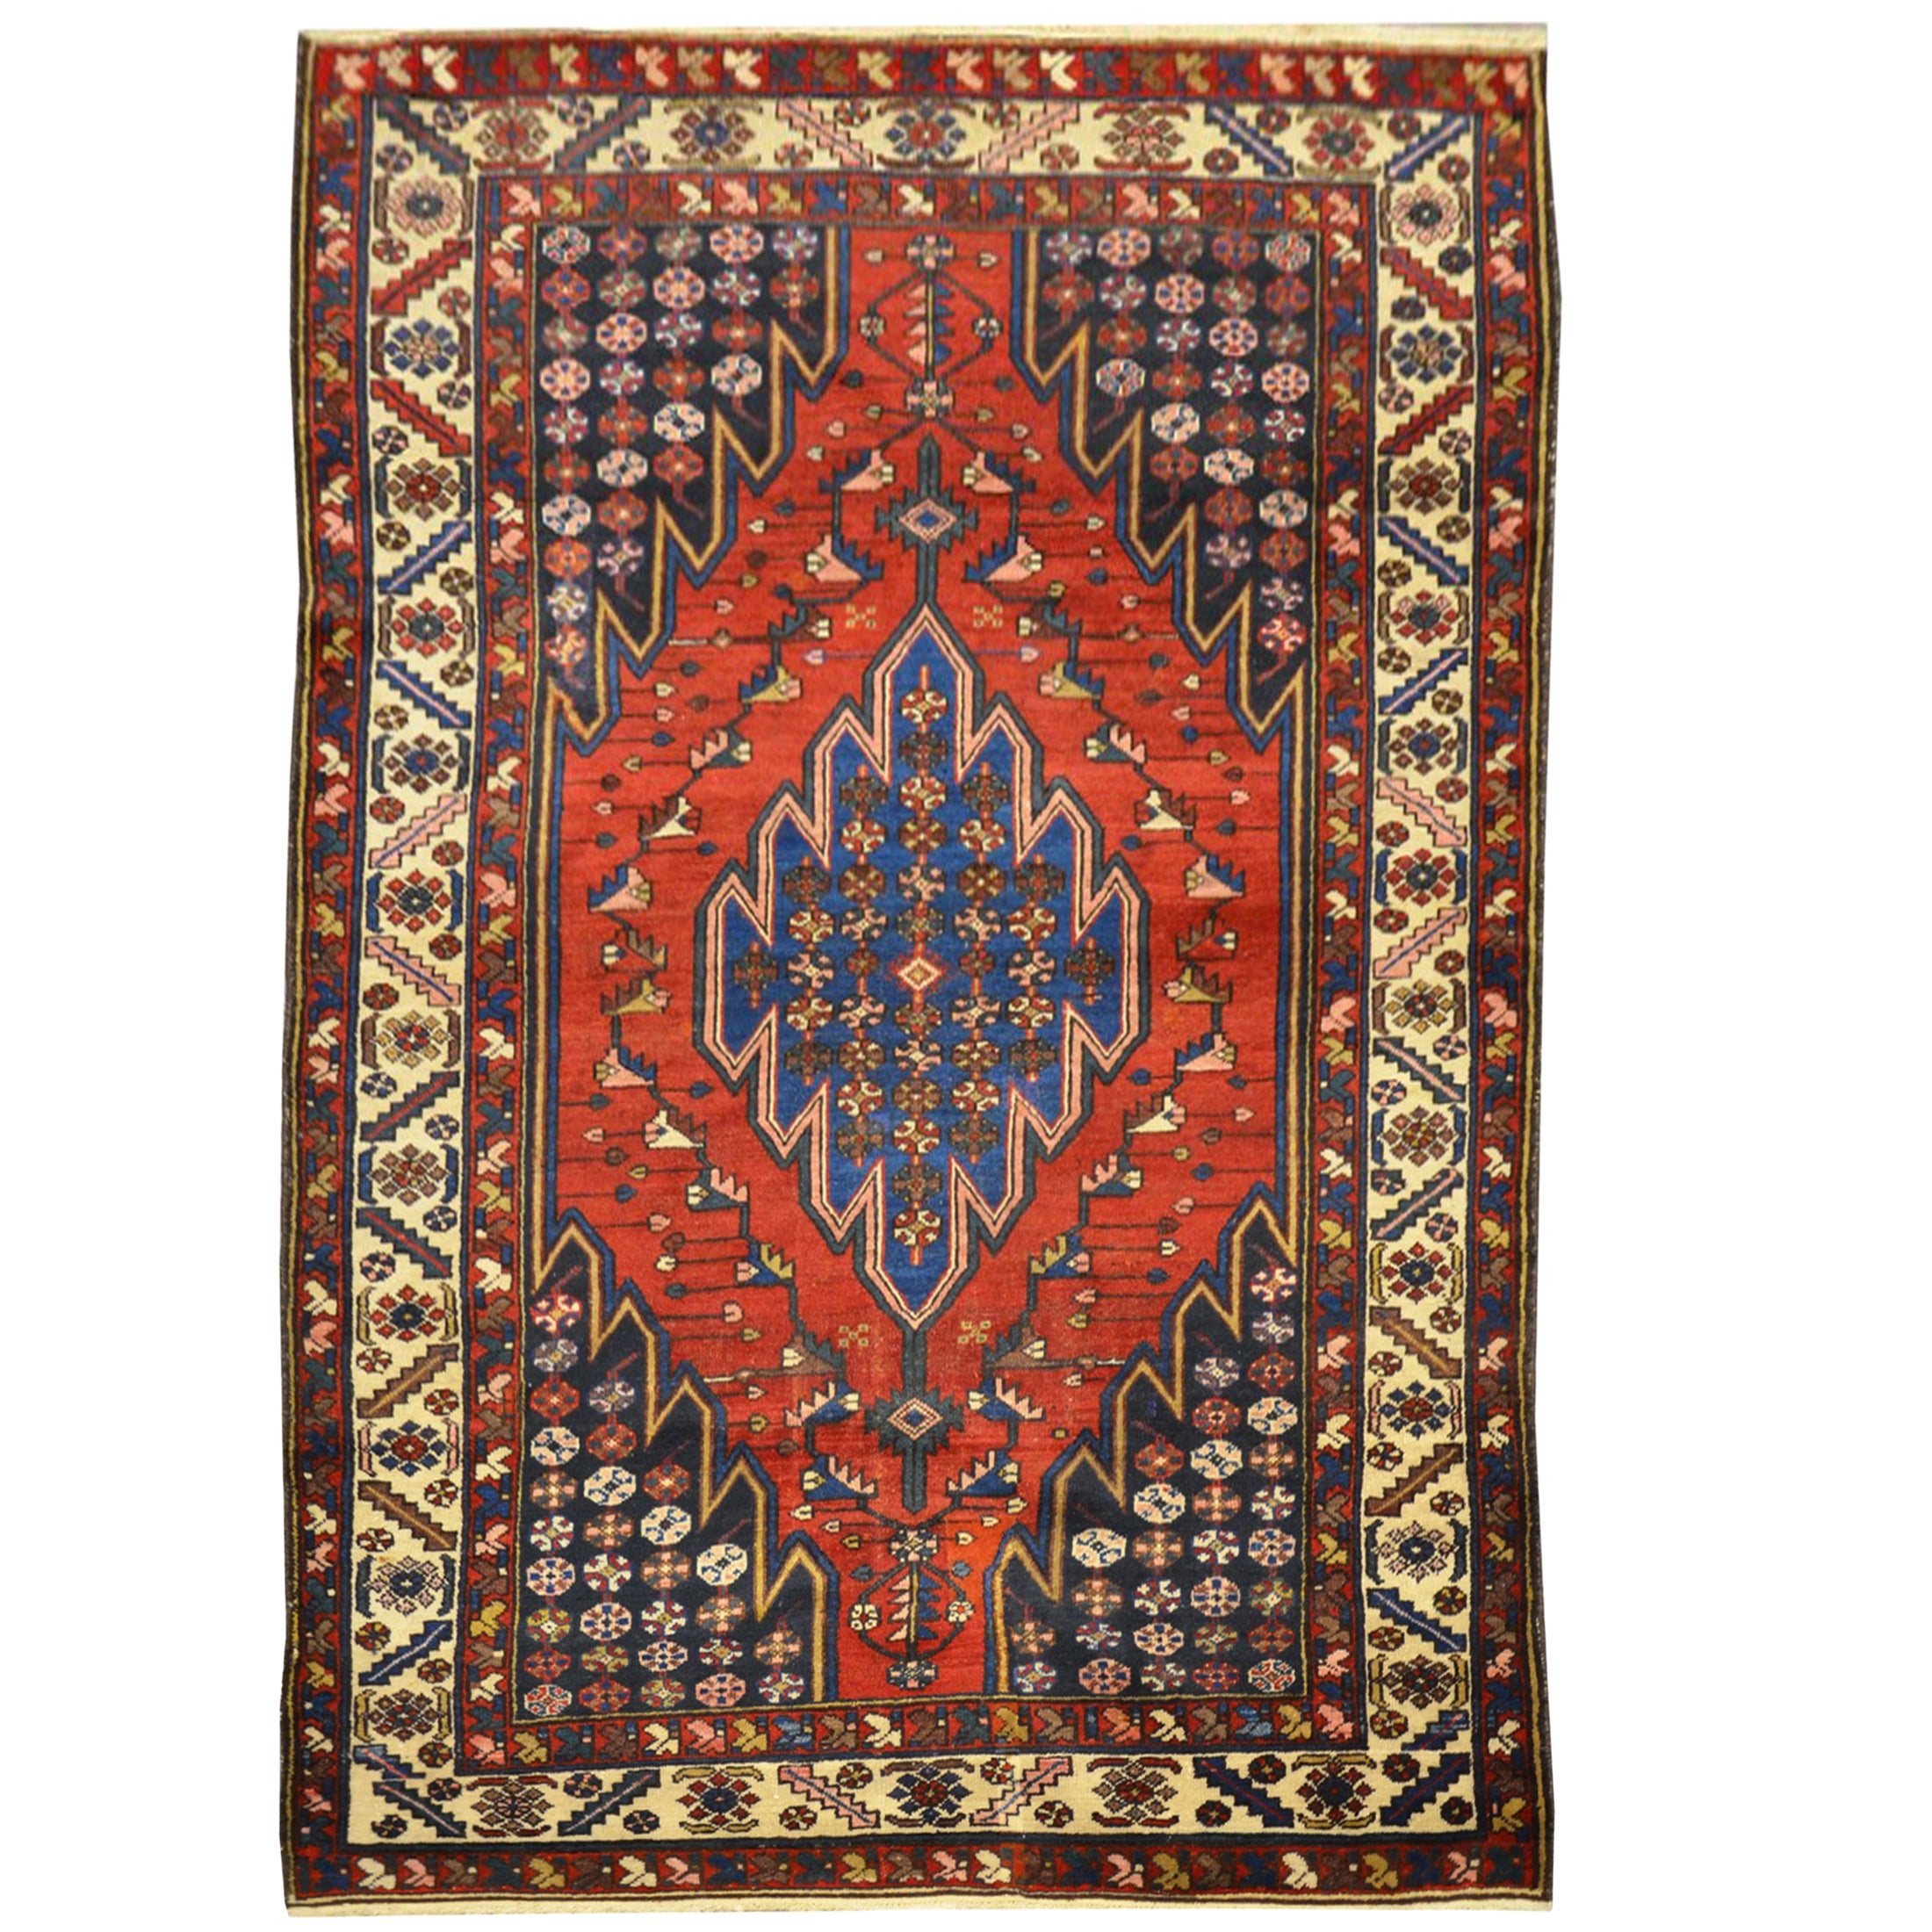 Persian Meshed Wool Rug Over Red Ground And Classic Design,